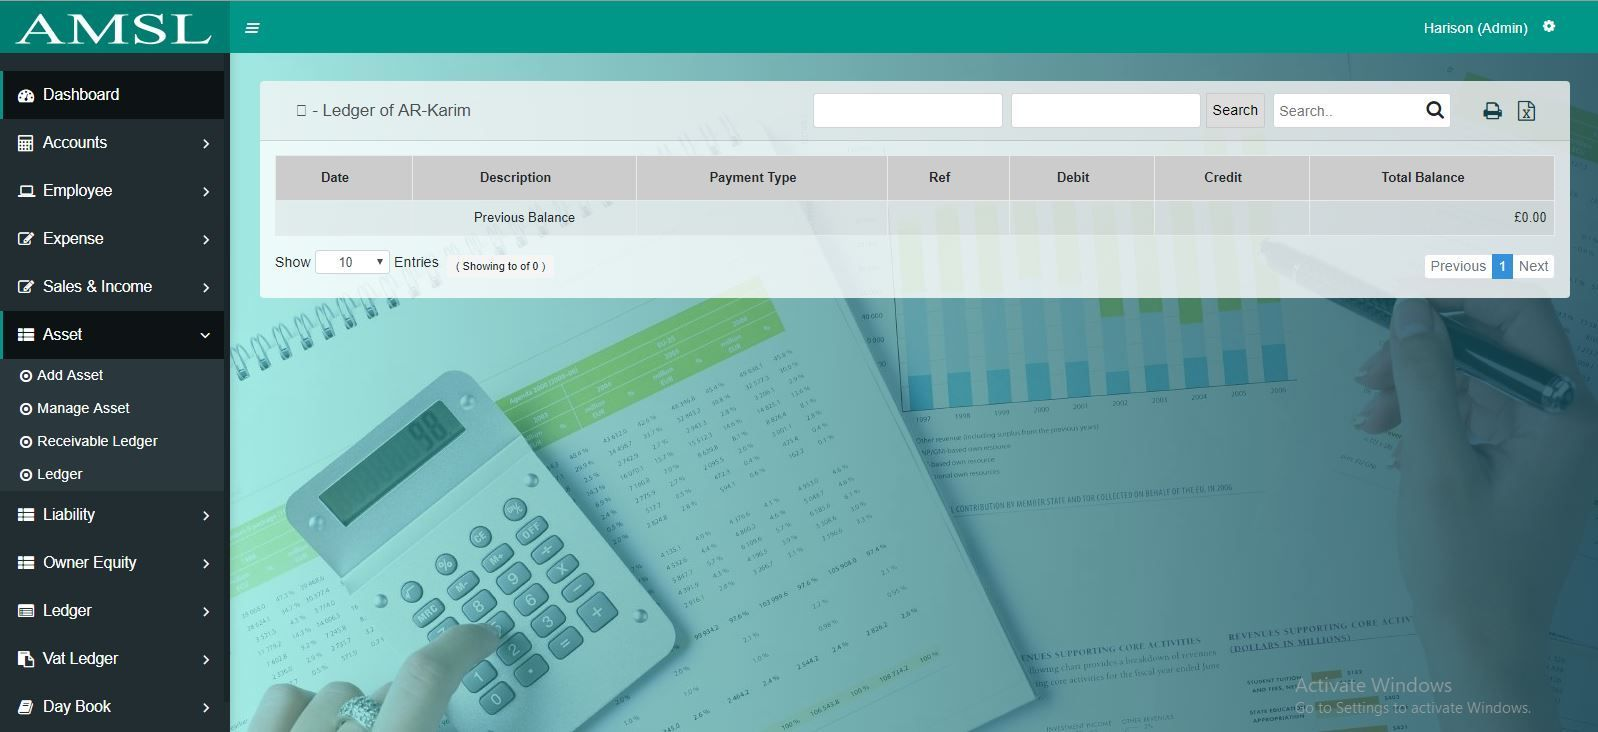 AMSL - Service Based Accounting Management System  Screenshot 10